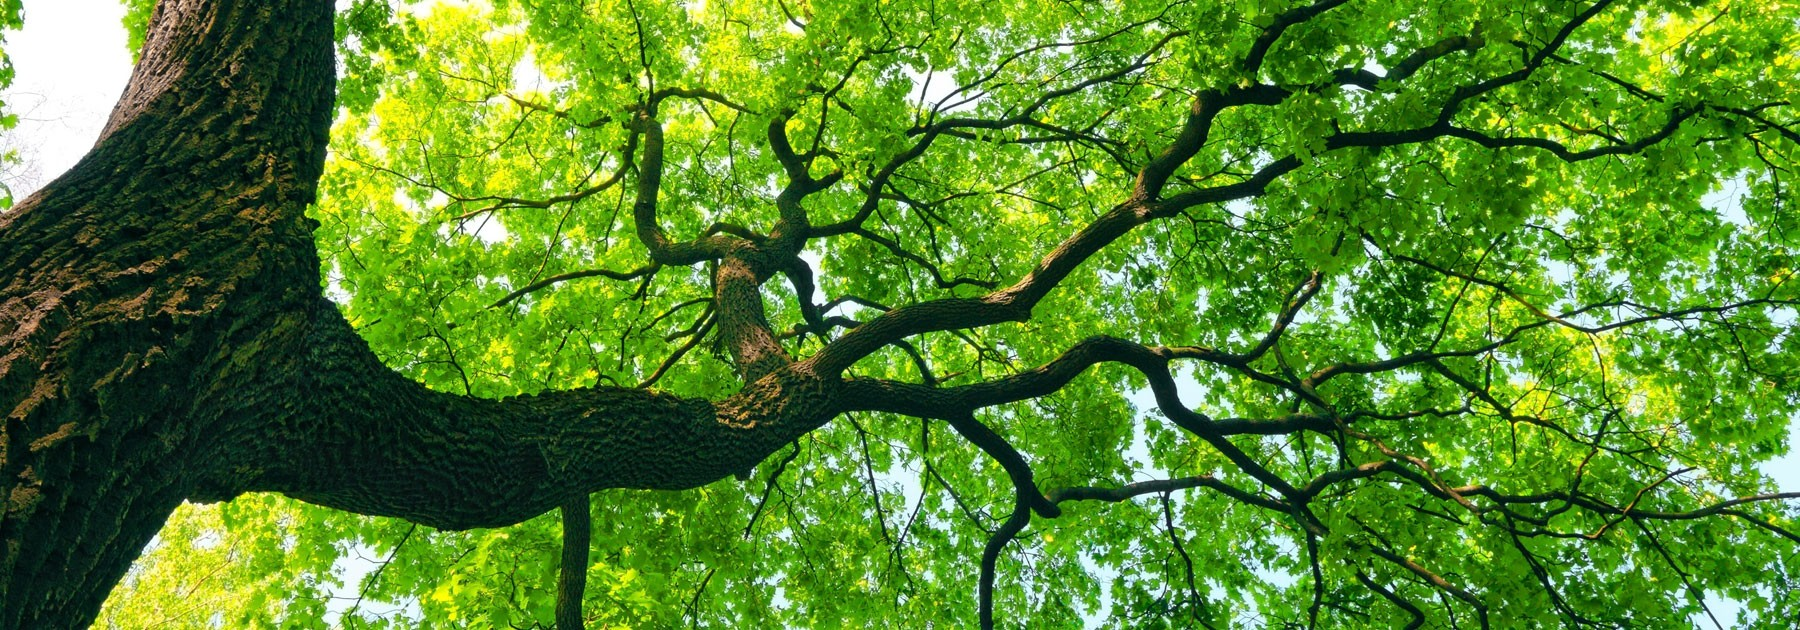 Mighty-Tree-With-Green-Leaves-Banner-Nature-To-Nurture-Aromatherapy-In-Hemel-St-Albans.jpg